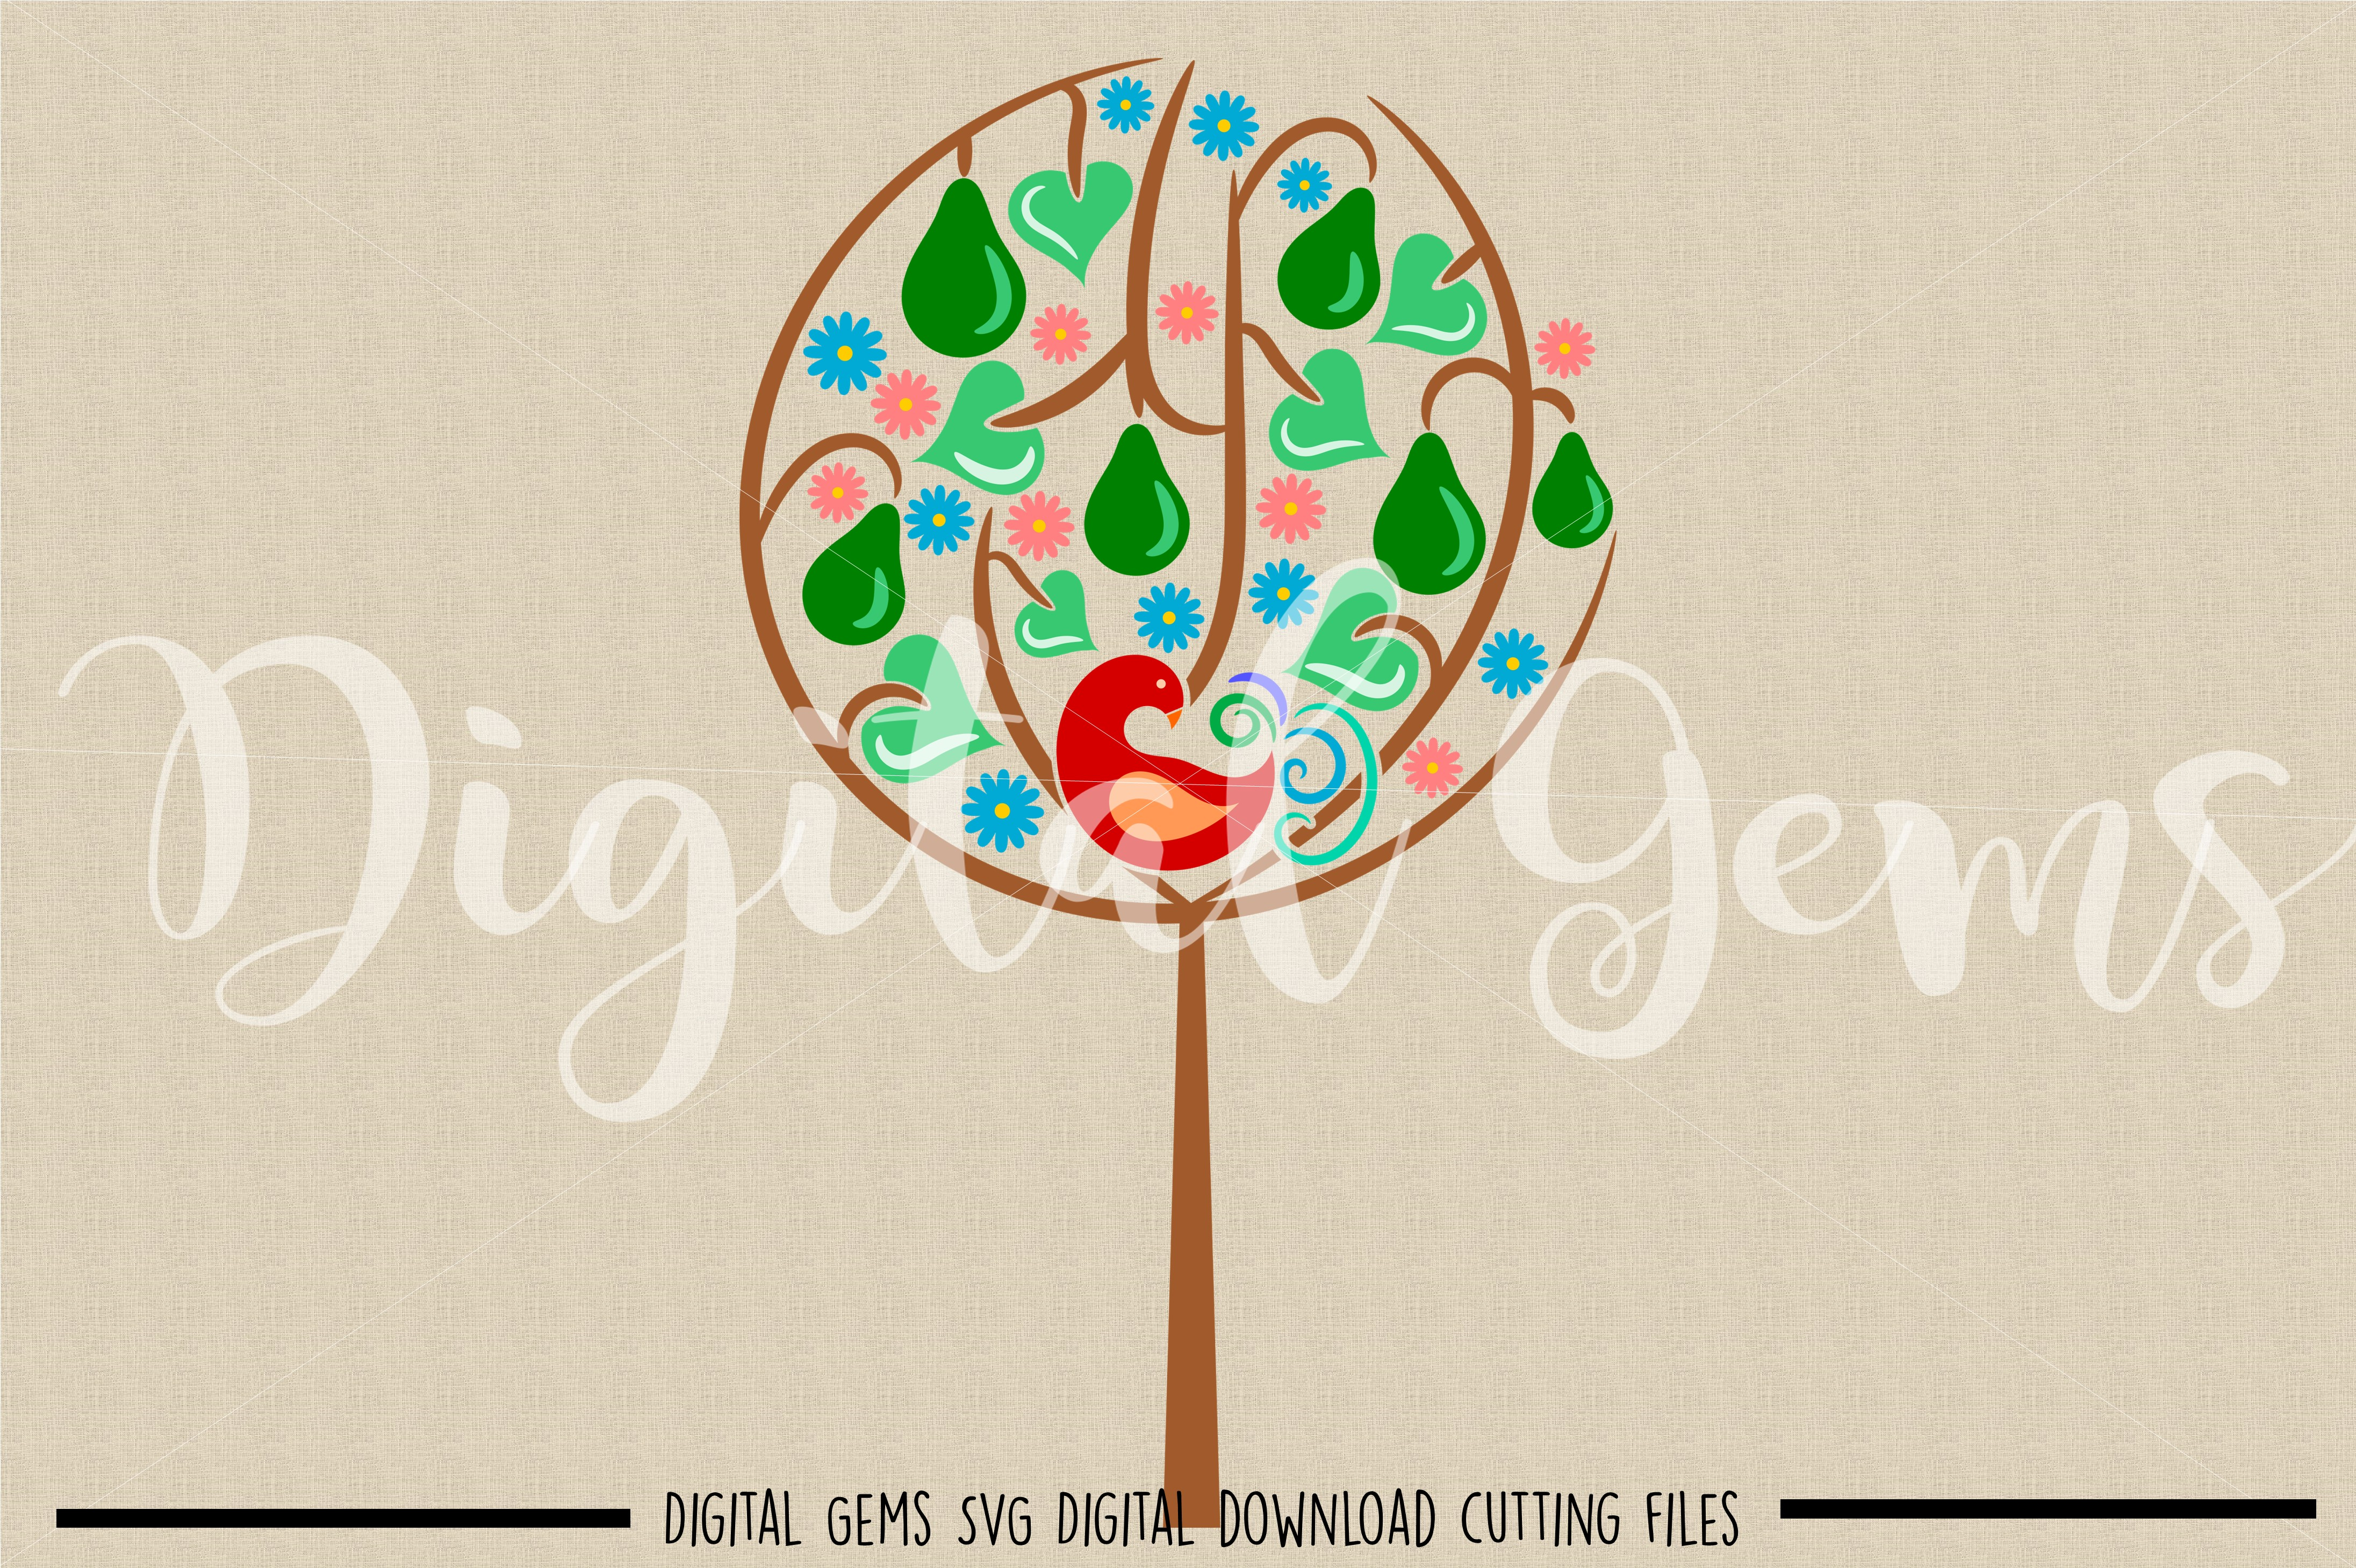 A Partridge in a pear tree SVG / DXF / EPS / PNG files example image 2